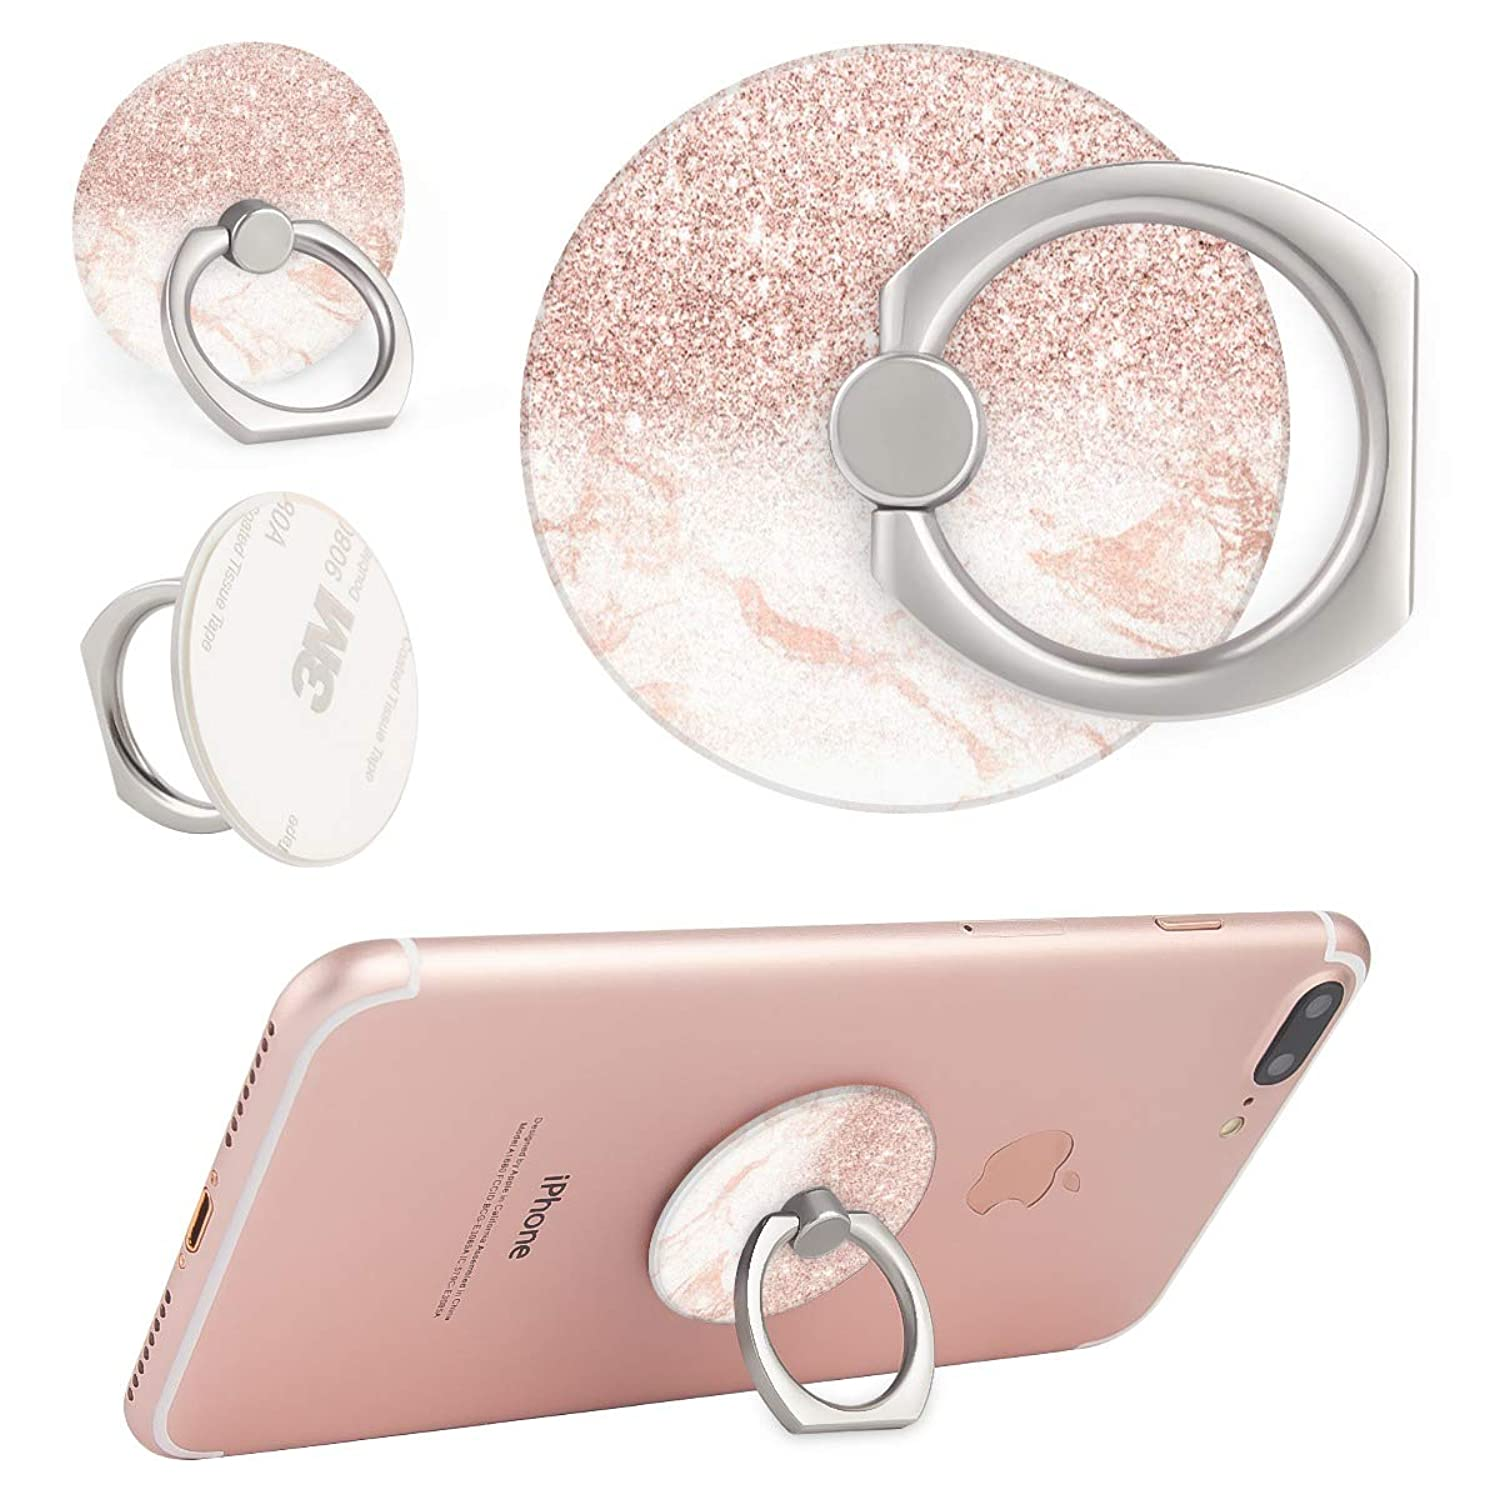 Phone Ring Stand Holder, Rose Gold Marble Blush Pink Faux Glitter Cell Phone Holder 360 Degree Rotation Finger Ring Stand Compatible with Smartphones and Tablets